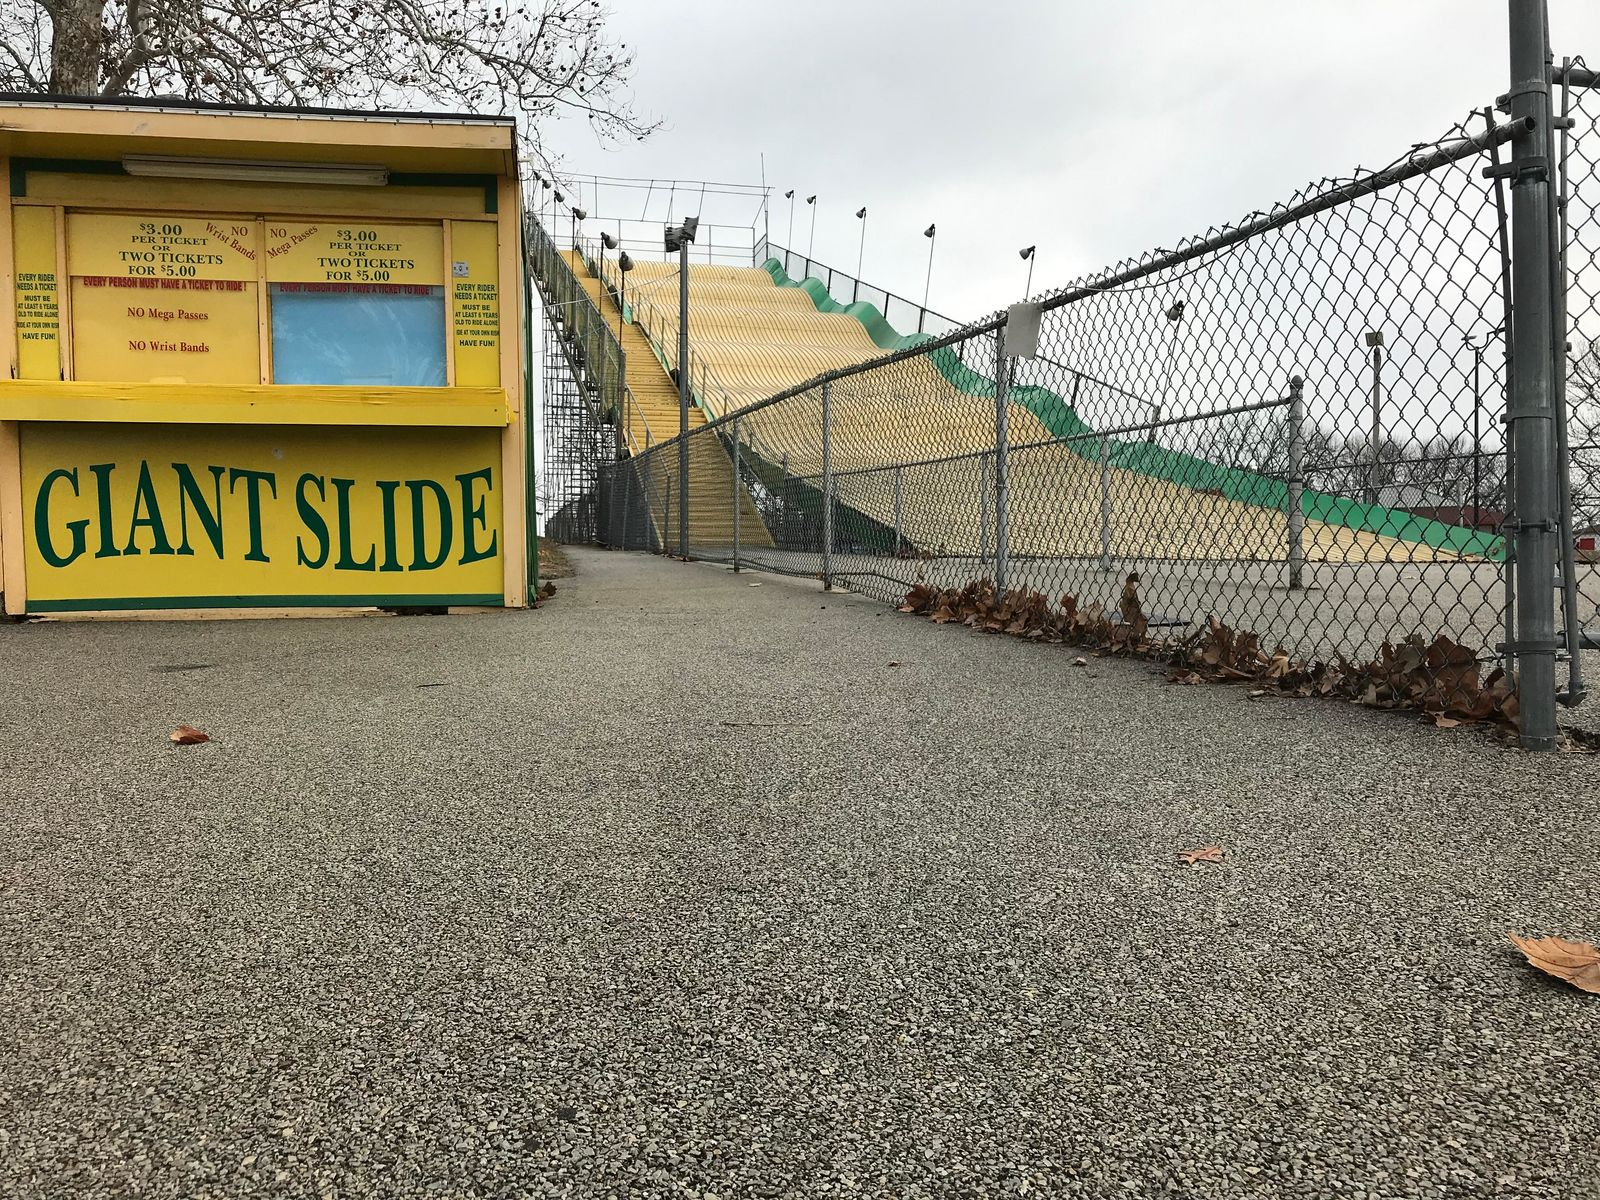 The Giant Slide at the Illinois State Fairgrounds (Billy Hatfield)